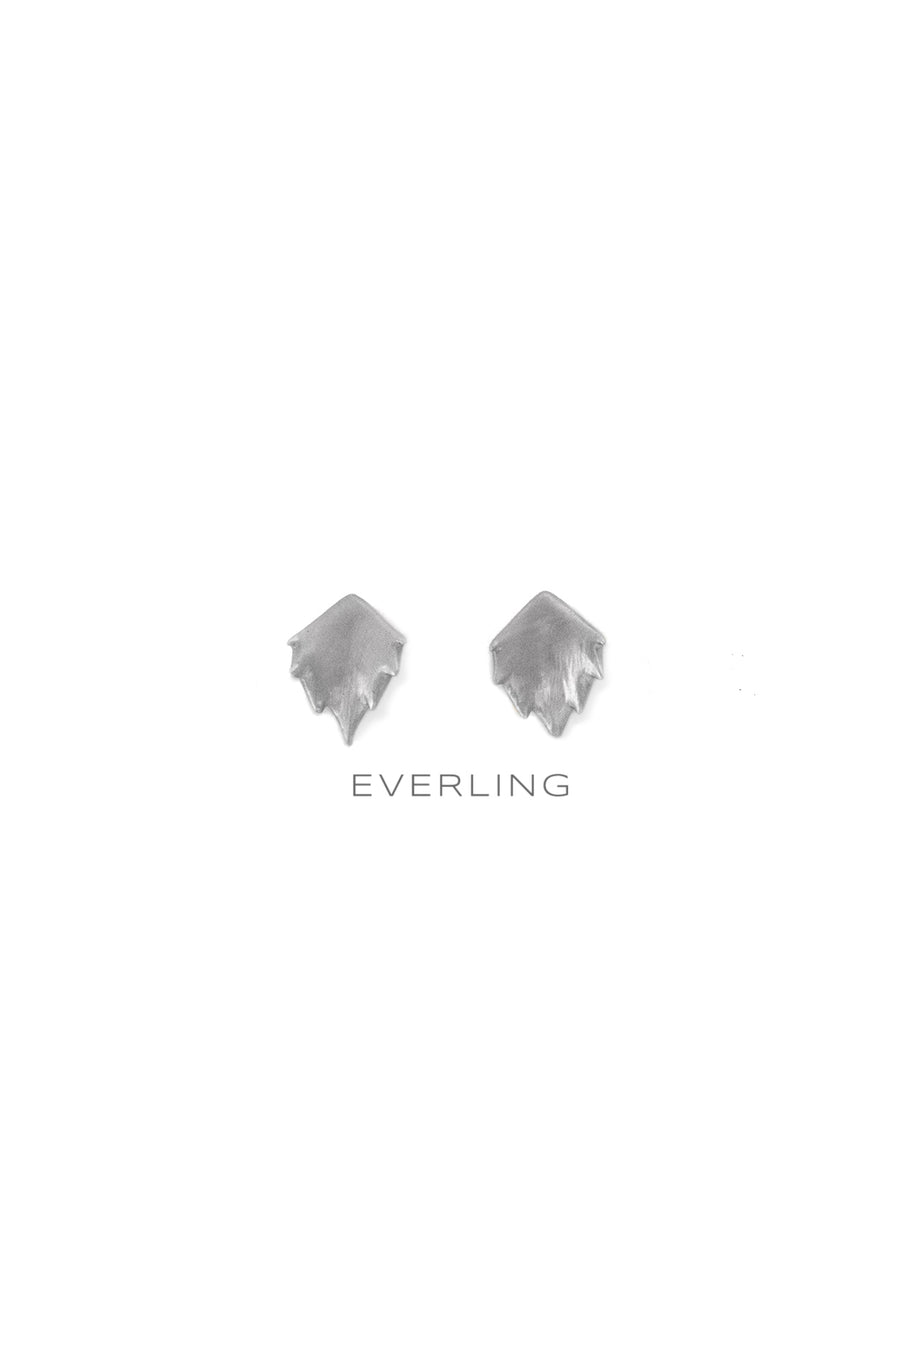 Recycled 14K Yellow Gold and Sterling Silver Bear Paw Design Stud Earrings. #studearrings #organicjewelry www.everlingjewelry.com